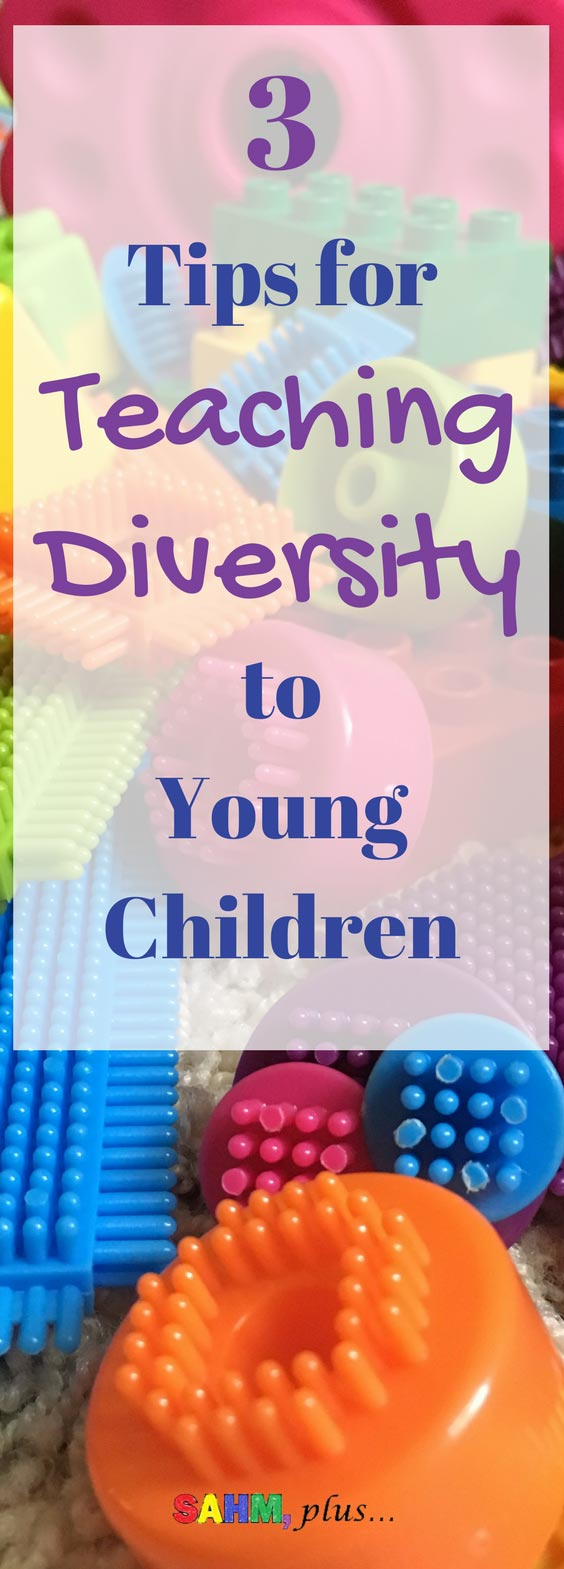 Teaching diversity to small children doesn't have to be difficult. These 3 tips will help you teach your children about differences.